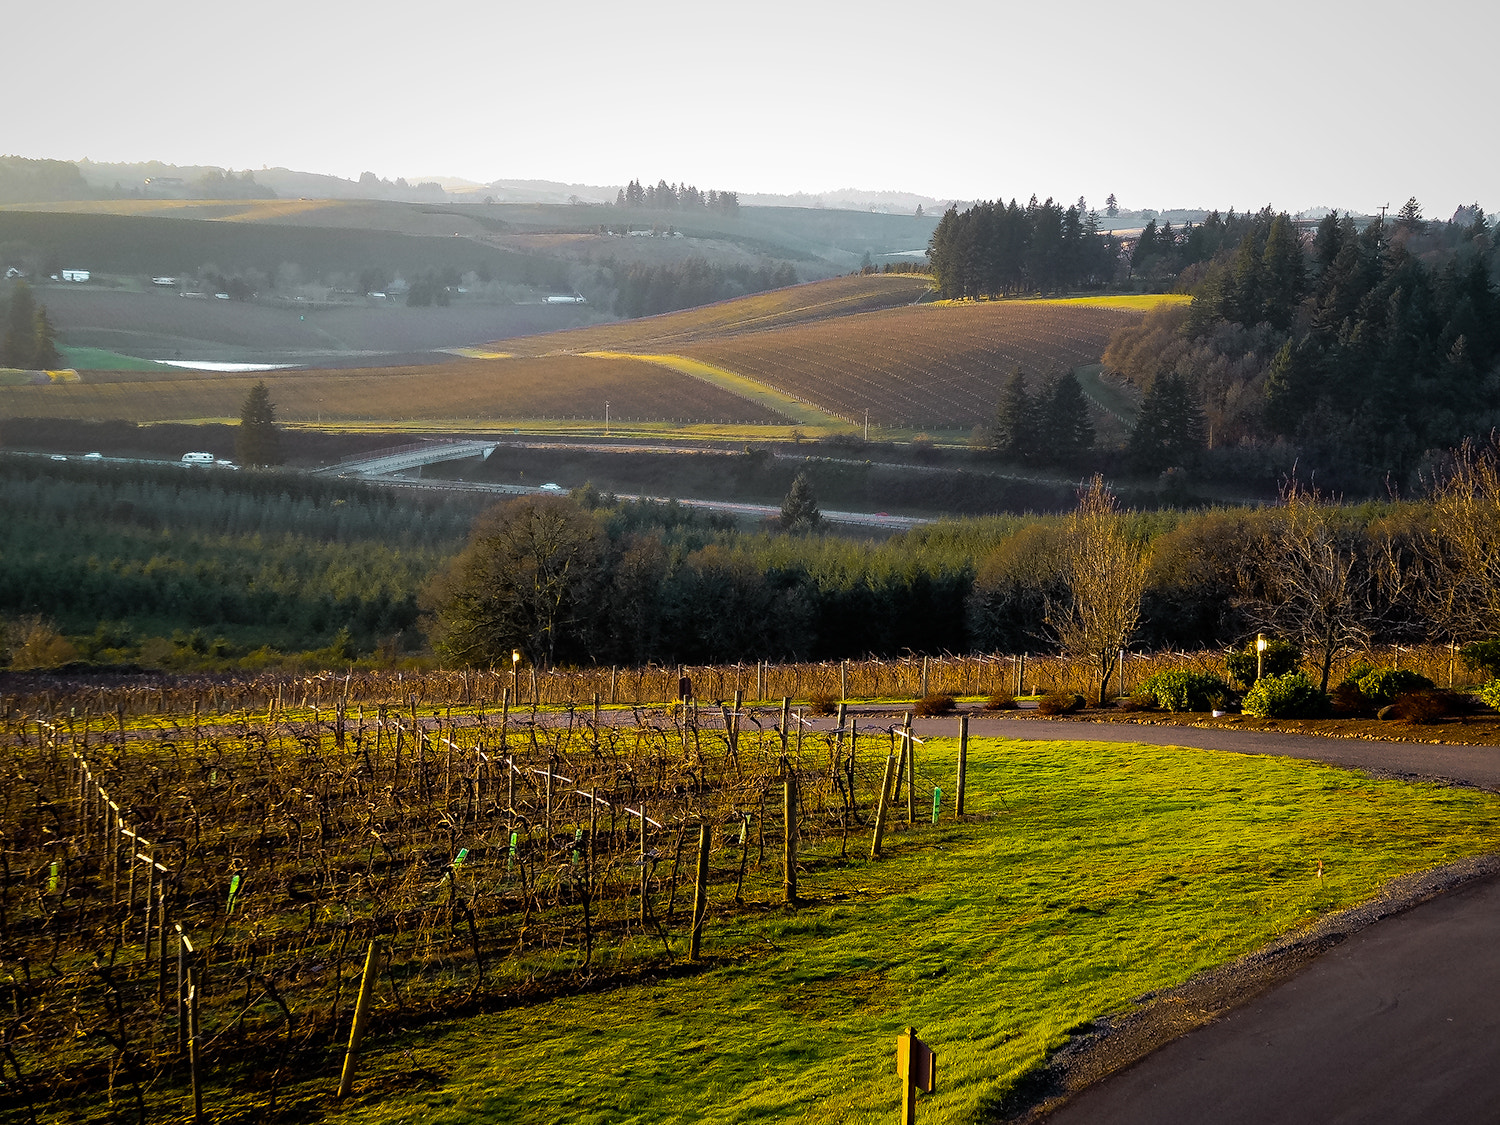 Photograph Willamette Valley Vineyard, Oregon by Dennis Mai on 500px